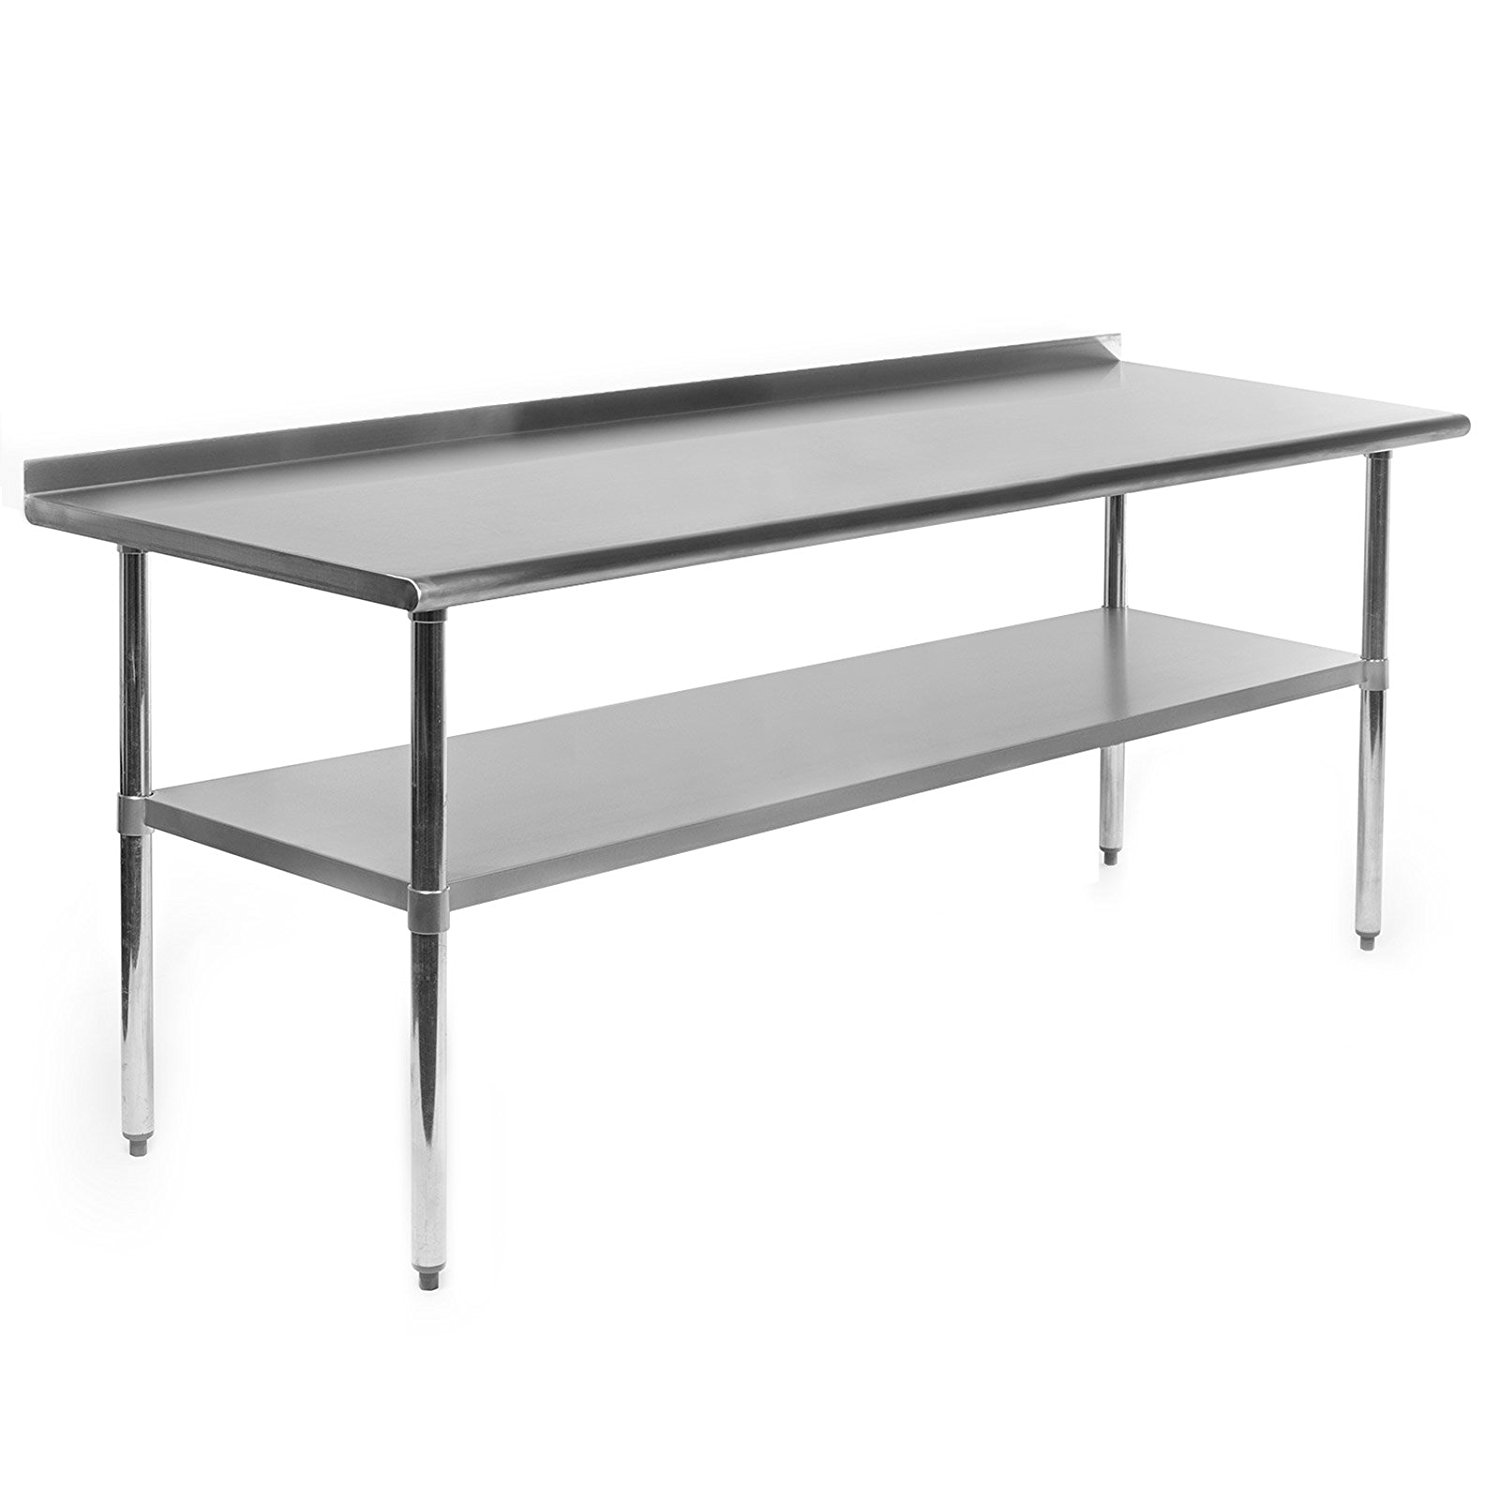 Restoration Stainless Steel Cleaning and Prep Table 6 ft X 2 ft with Back Splash 20180605 FREE Shipping